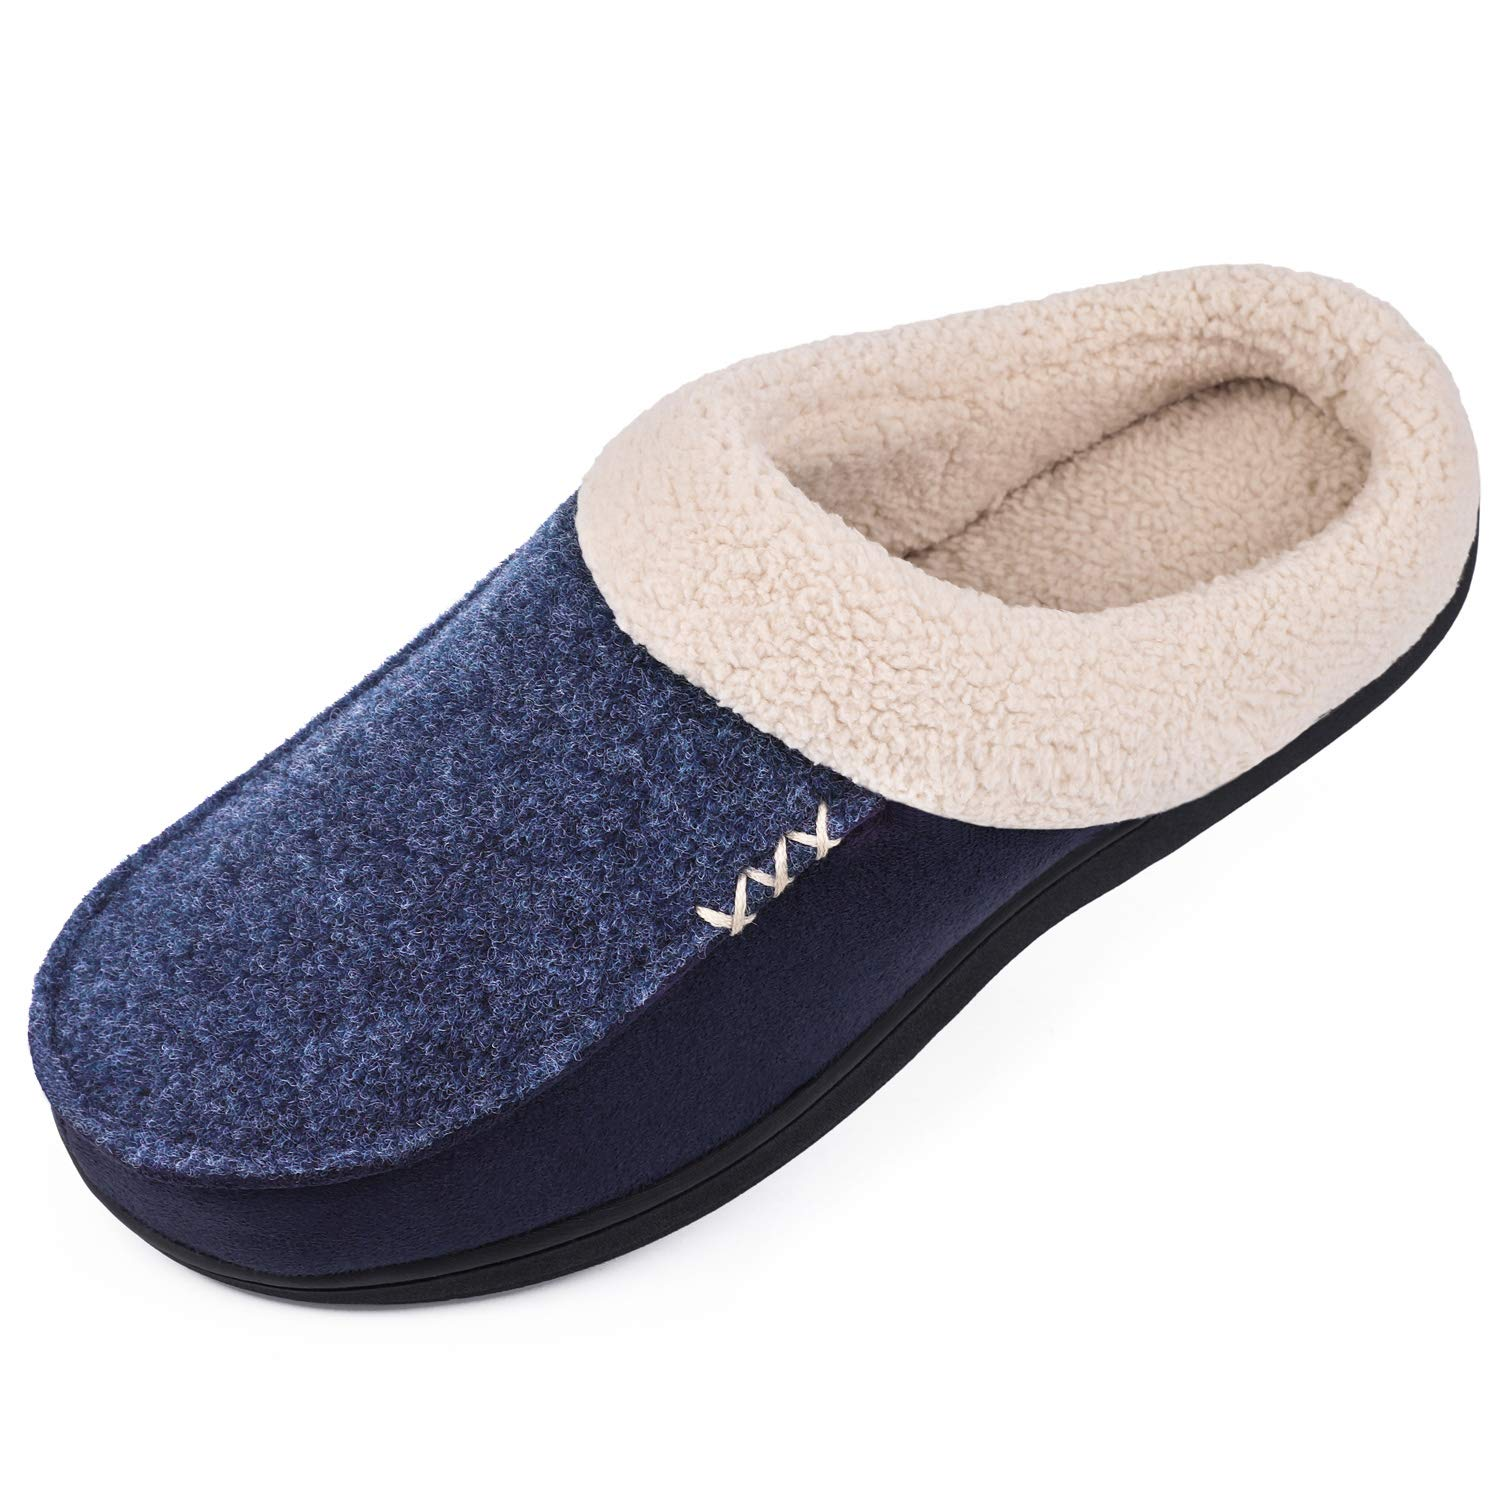 Image of Indoor/Outdoor Suede Slippers for Men - See More Colors